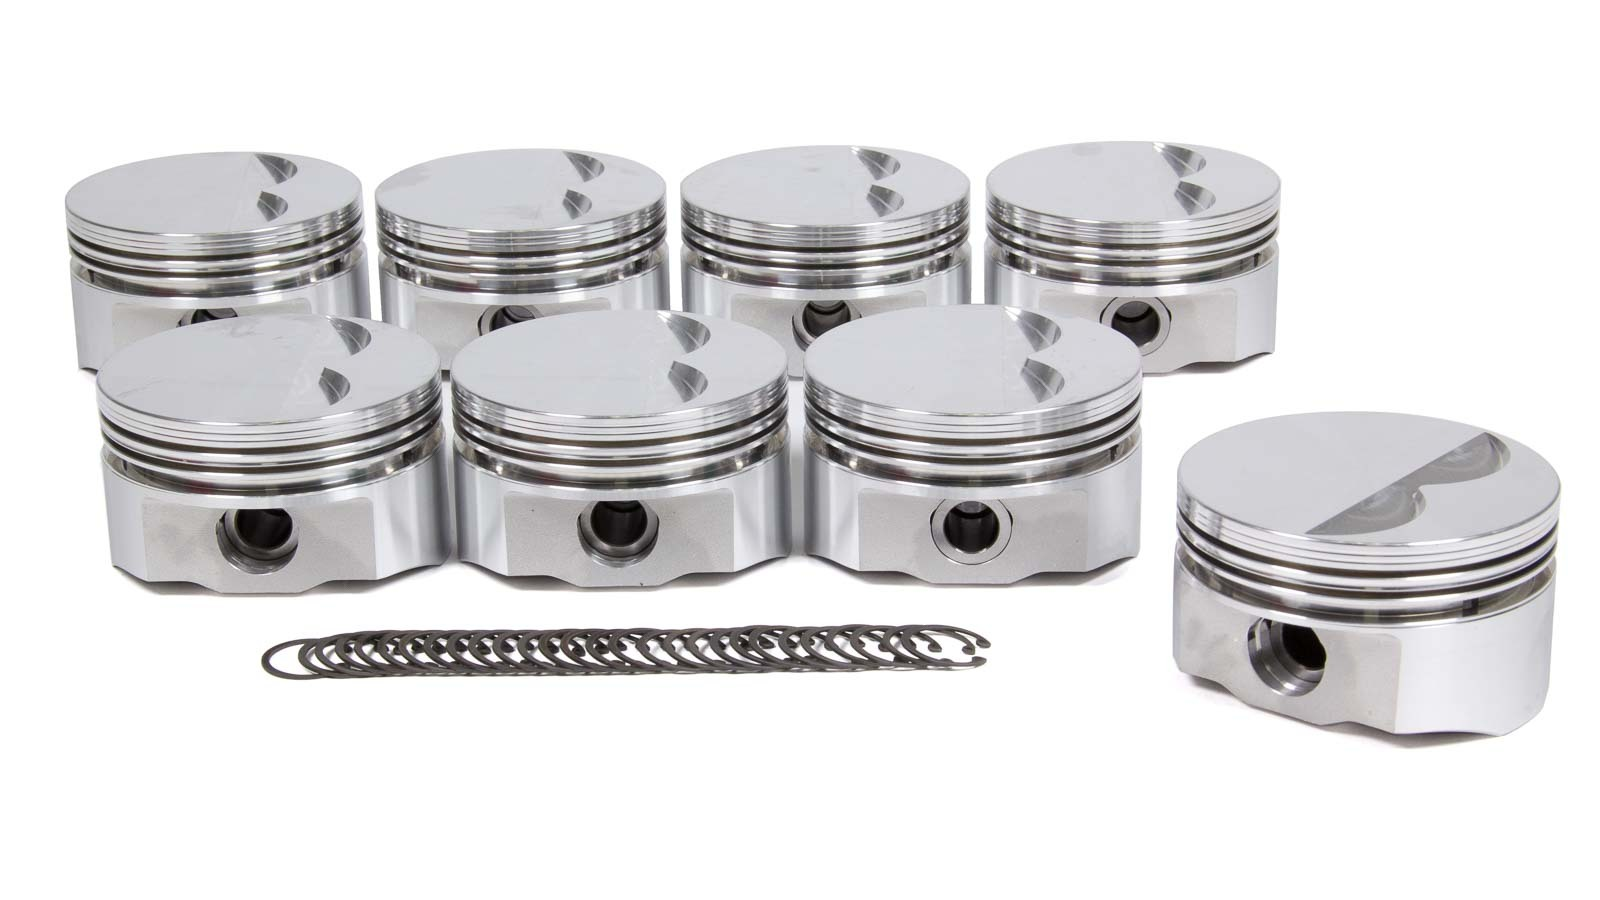 DSS Racing 8700-4000 Piston, E Series, Forged, 4.000 in Bore, 5/64 x 5/64 x 3/16 in Ring Grooves, Minus 5.0 cc, Small Block Chevy, Set of 8